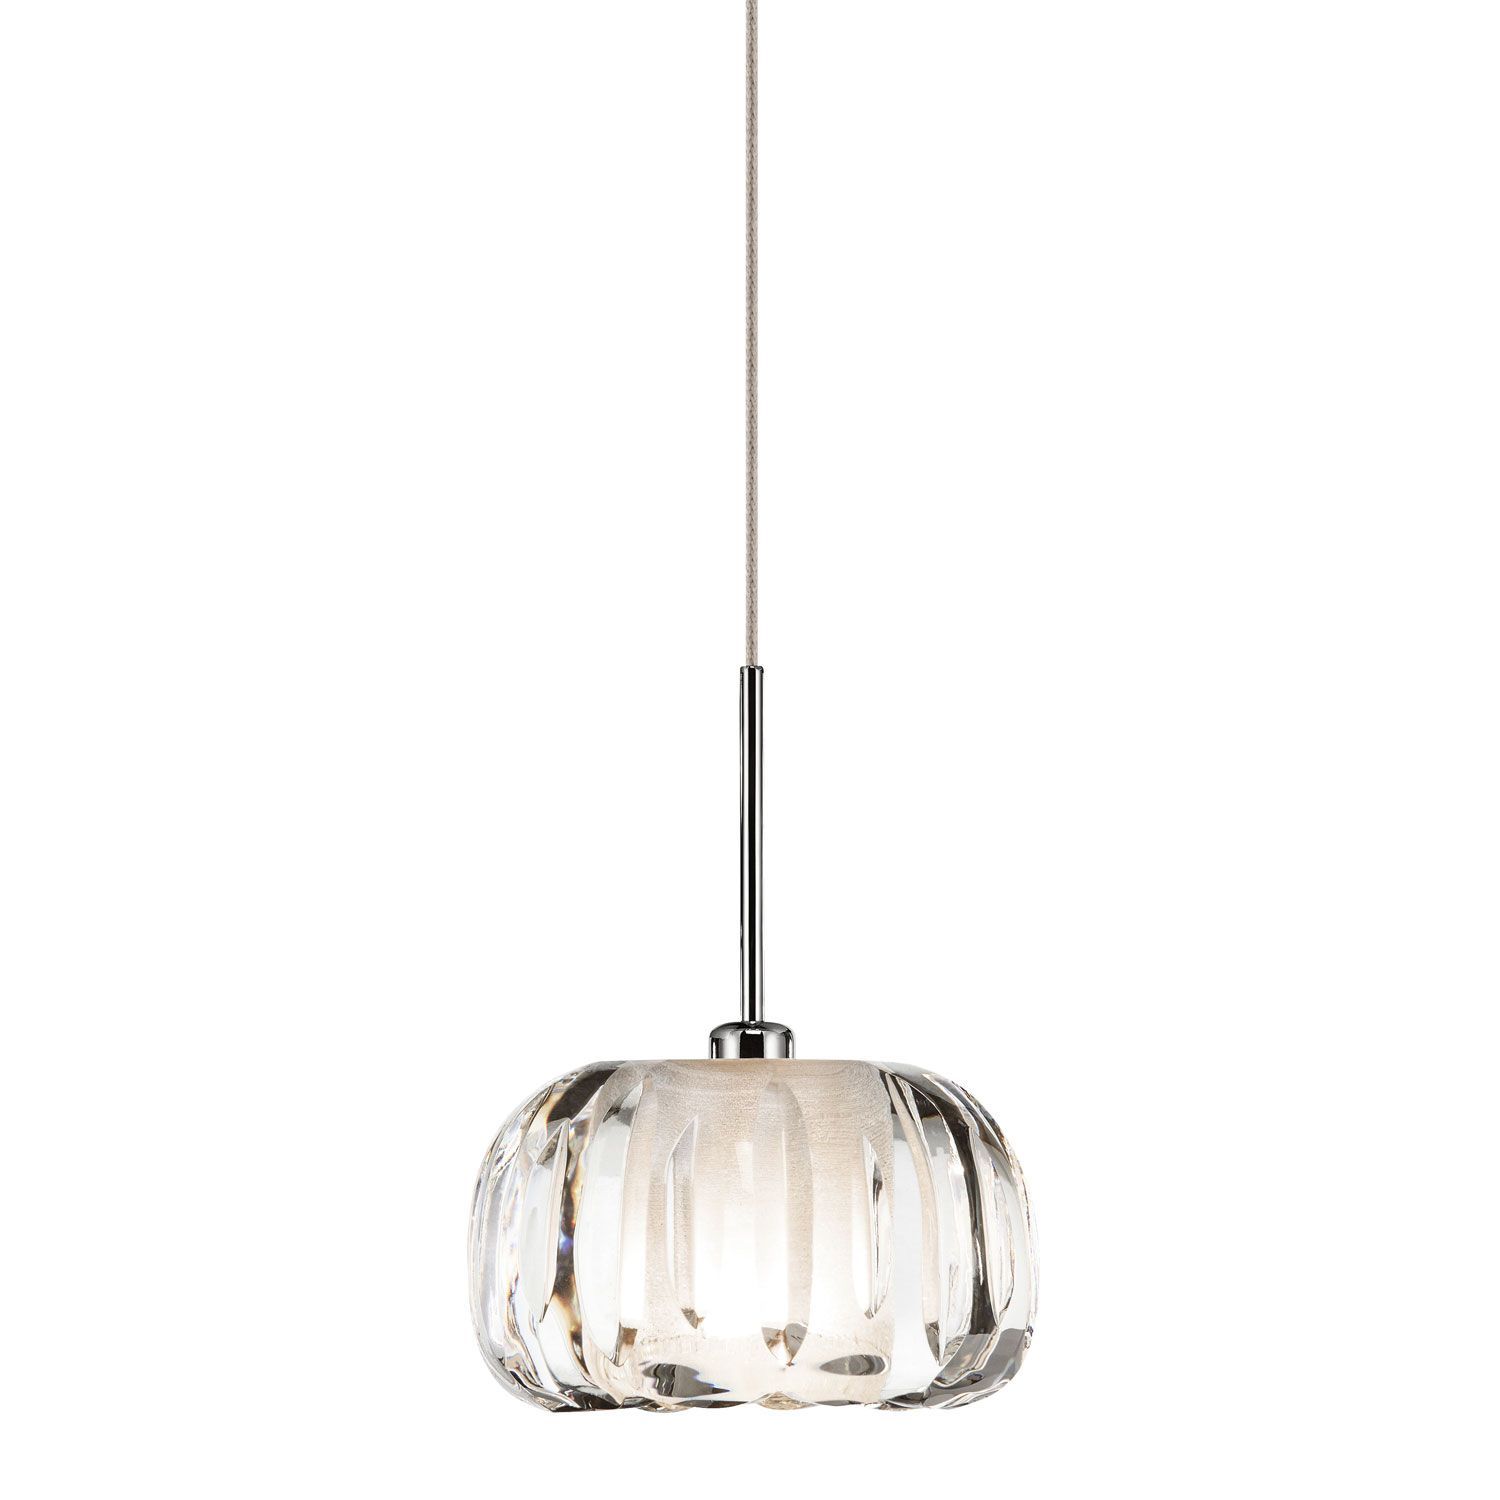 Elan Zucca Chrome e Light Mini Pendant